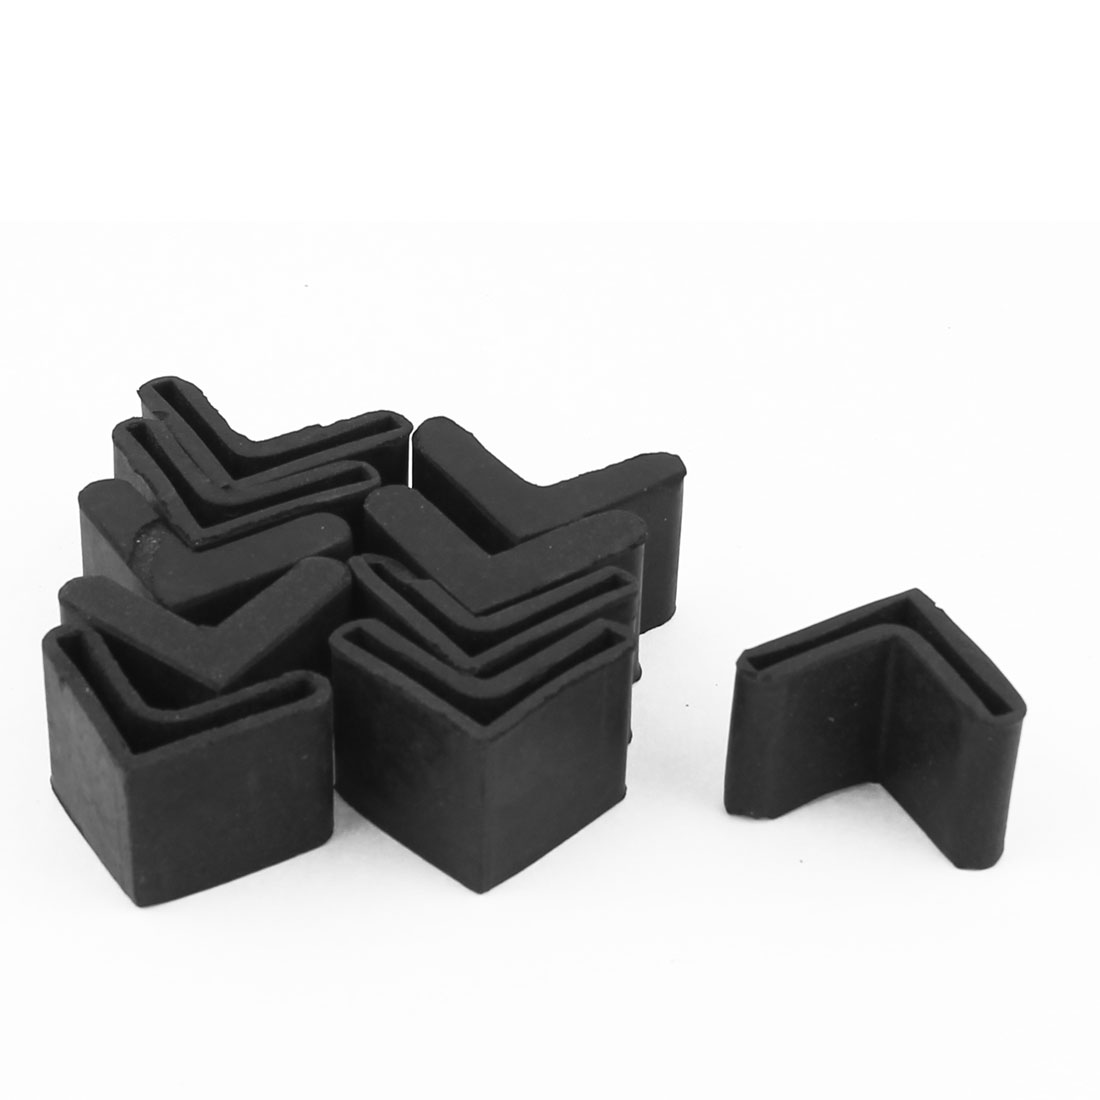 Safety Rubber Furniture Corner Protector Bumper Guard Cushion Black 10pcs